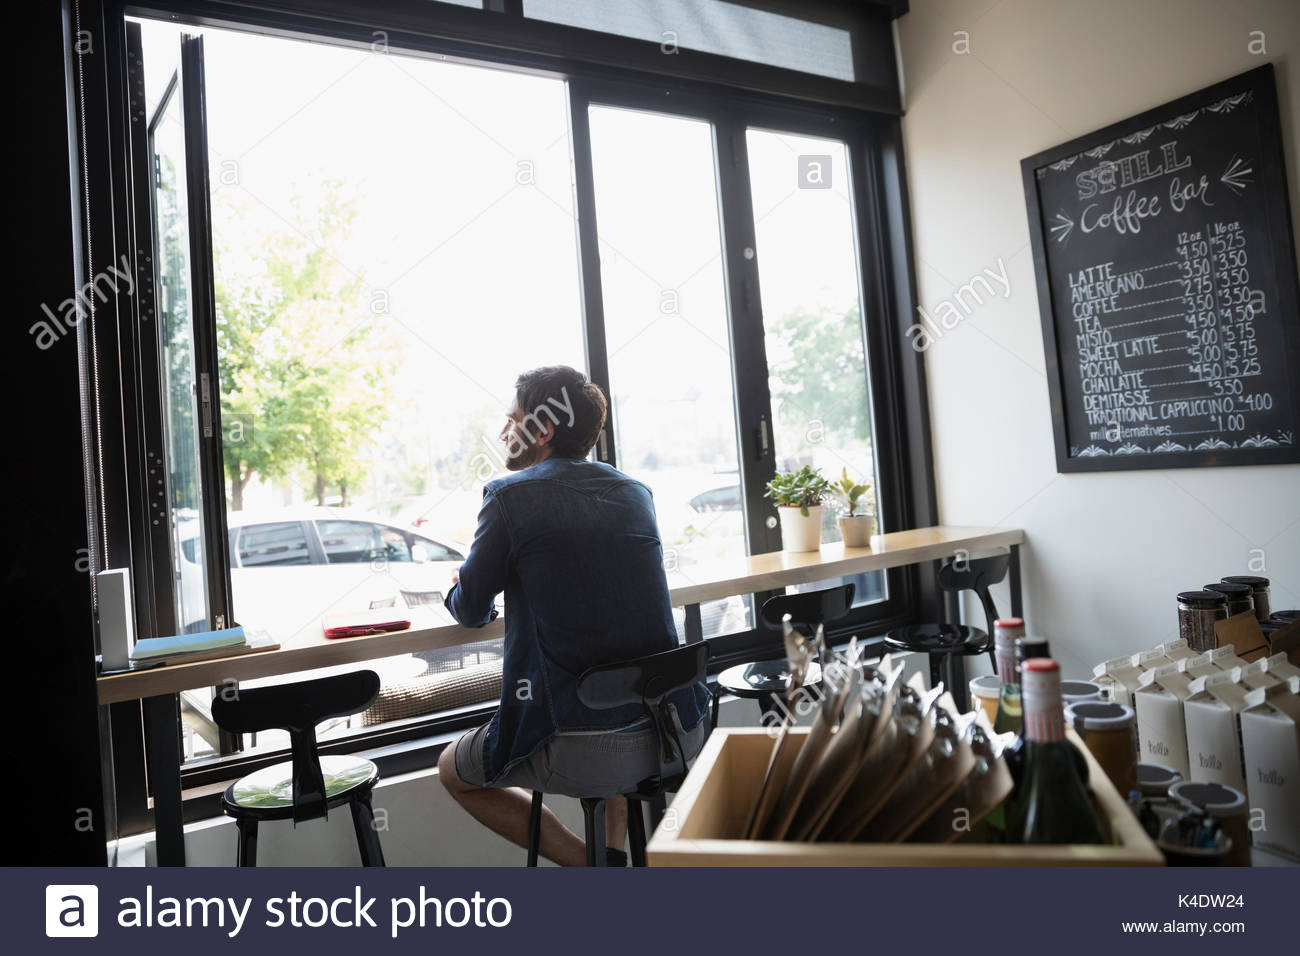 Pensive man sitting in cafe Photo Stock